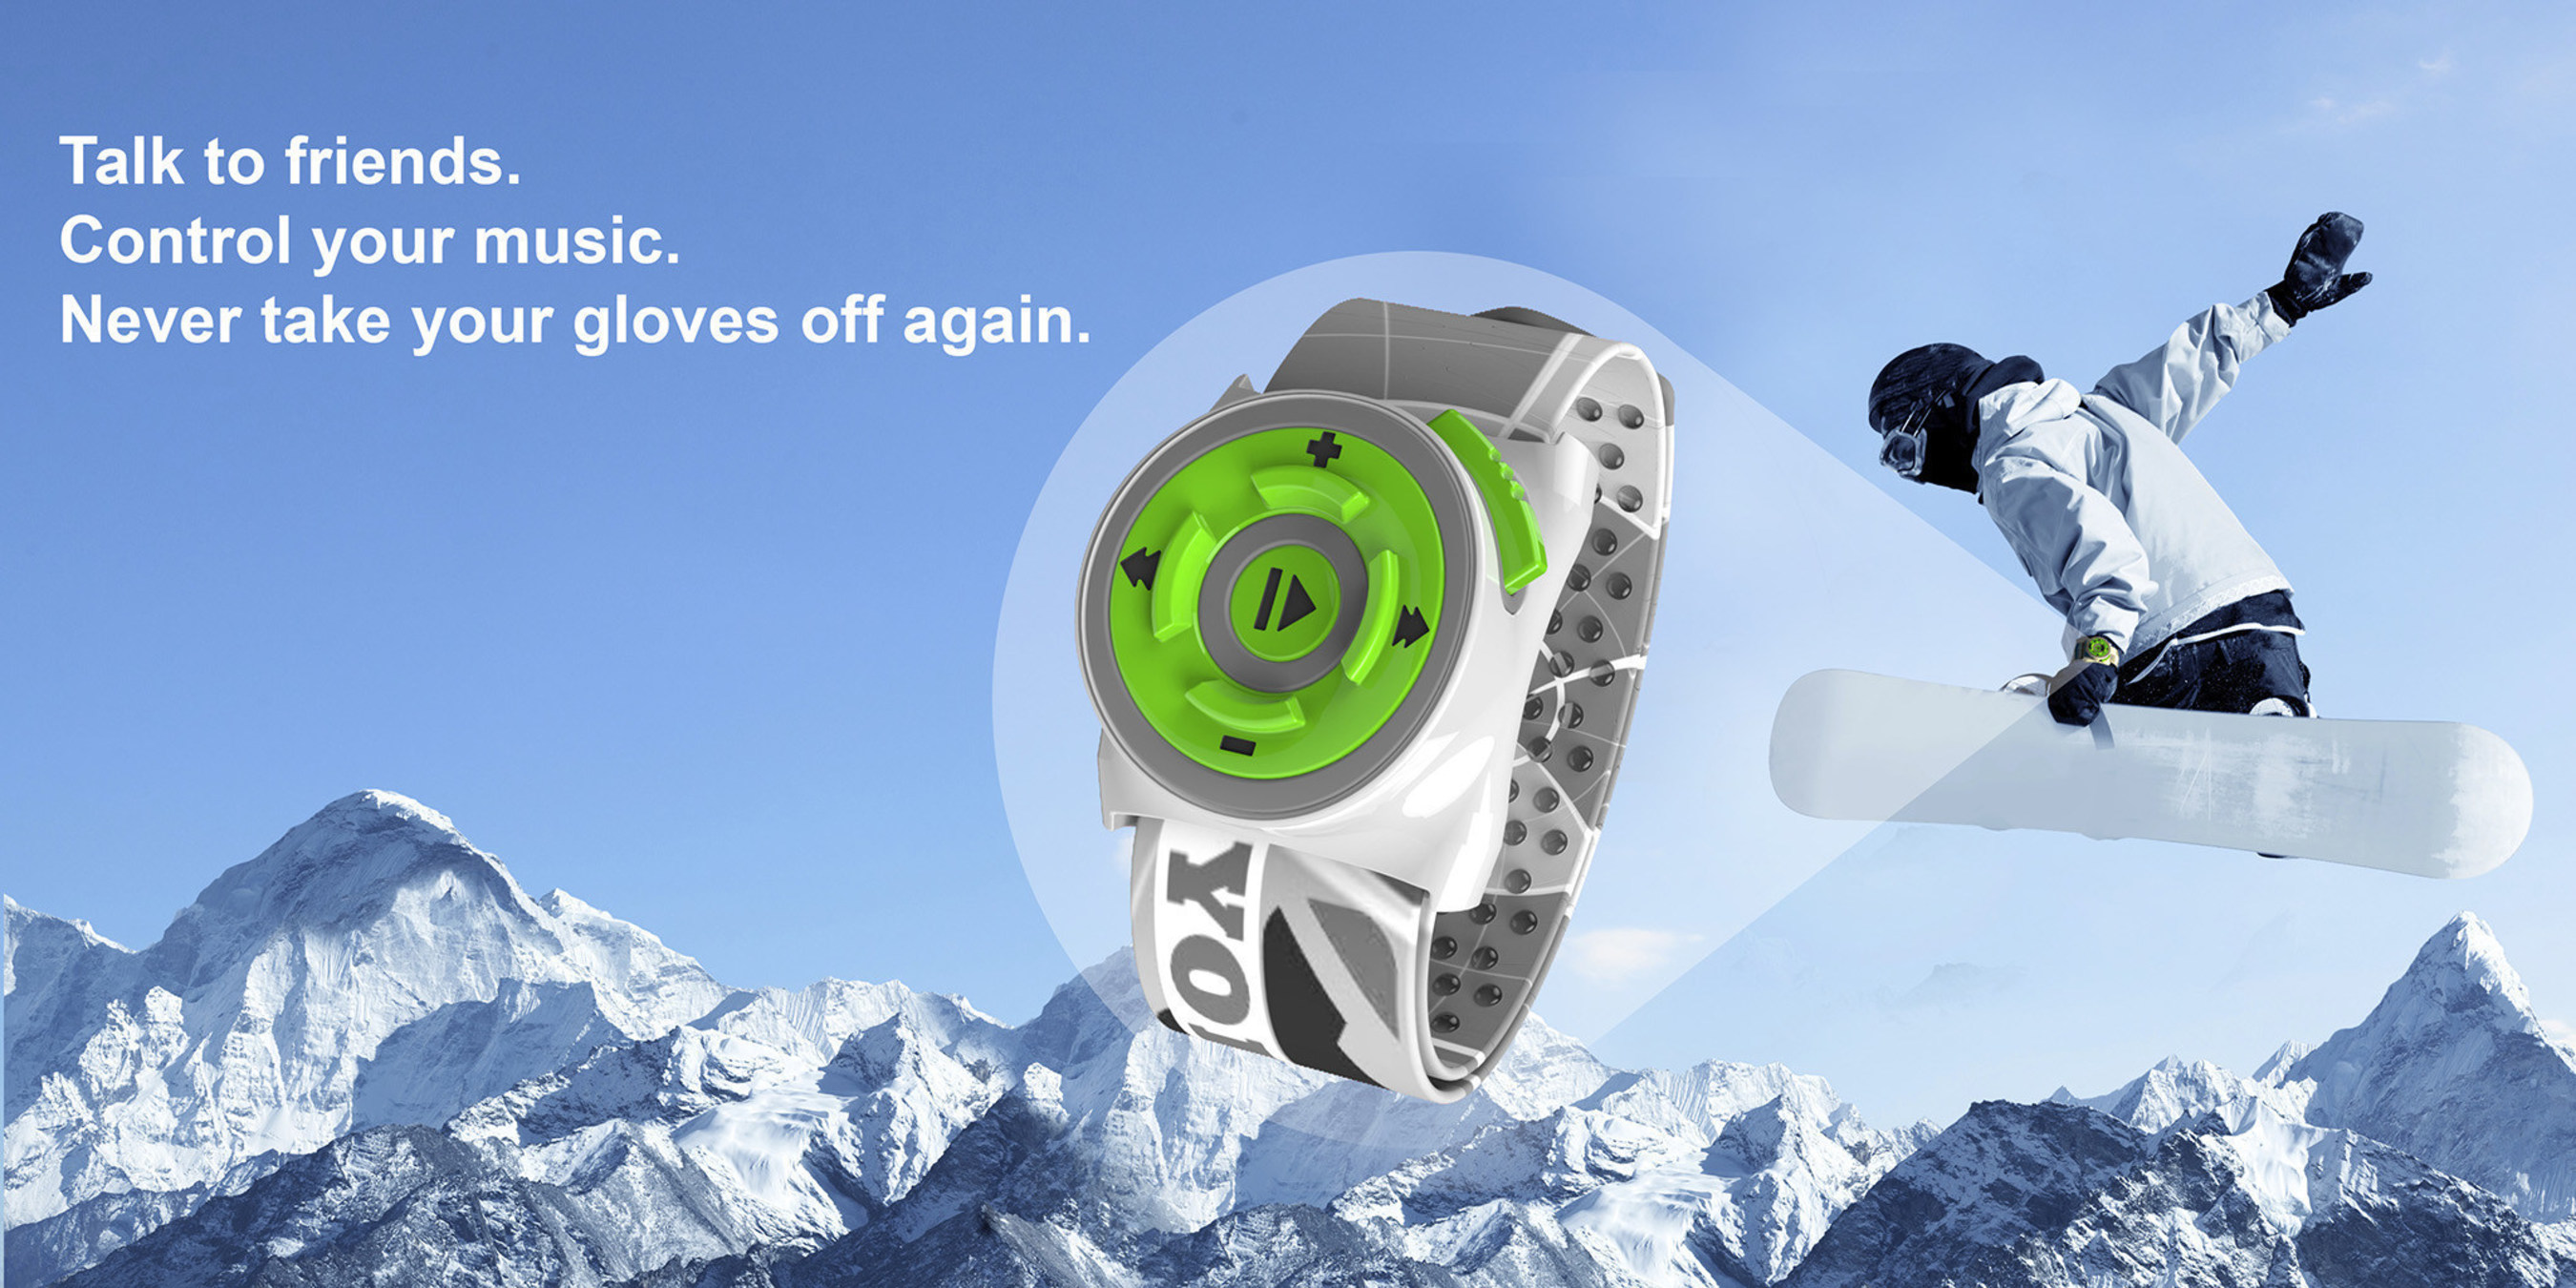 YodelUP - World's first on-glove wearable for communication and music launches on Kickstarter